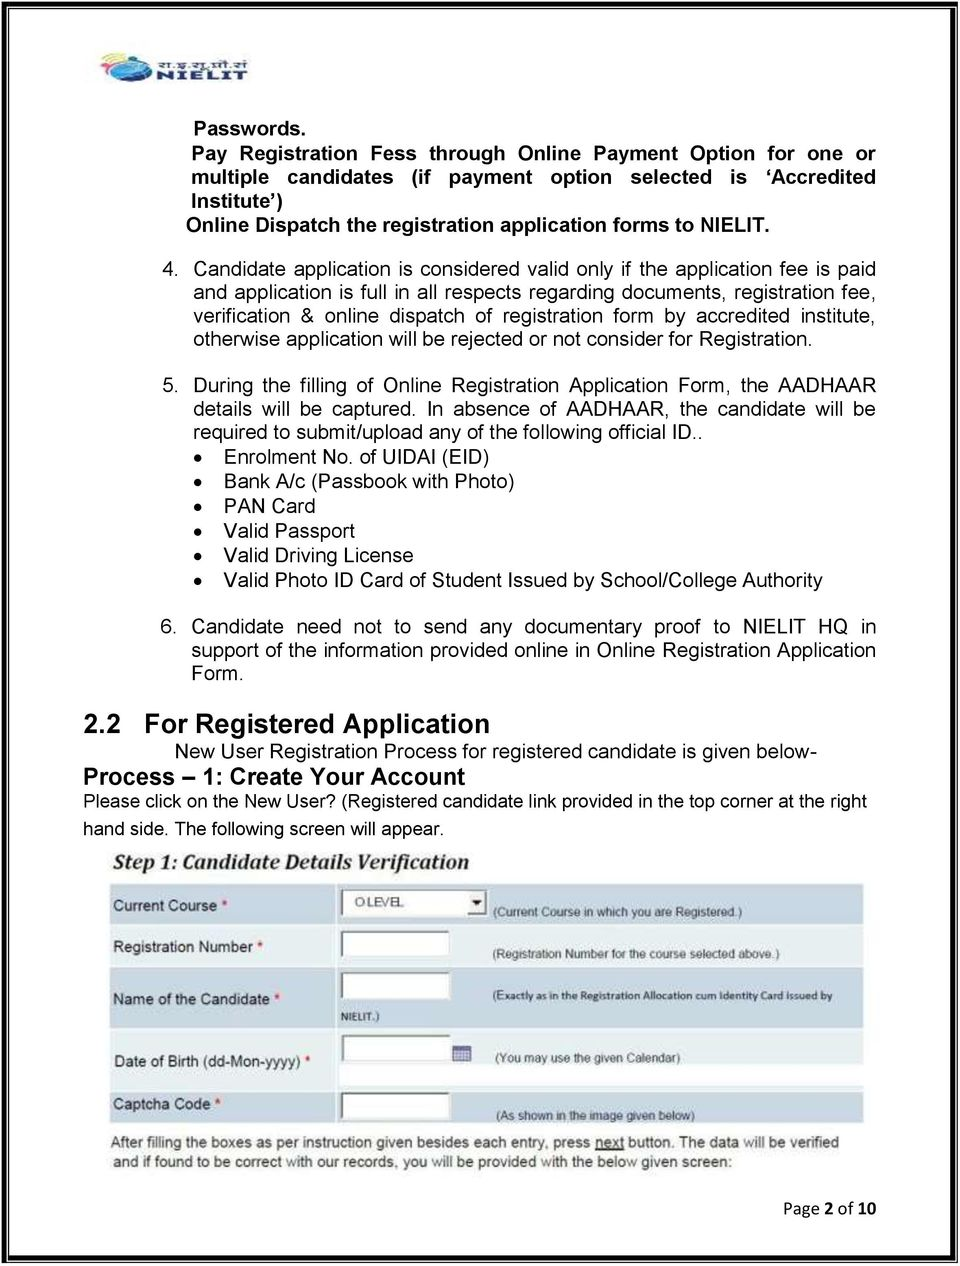 GUIDELINES AND INSTRUCTIONS FOR SUBMISSION OF ONLINE